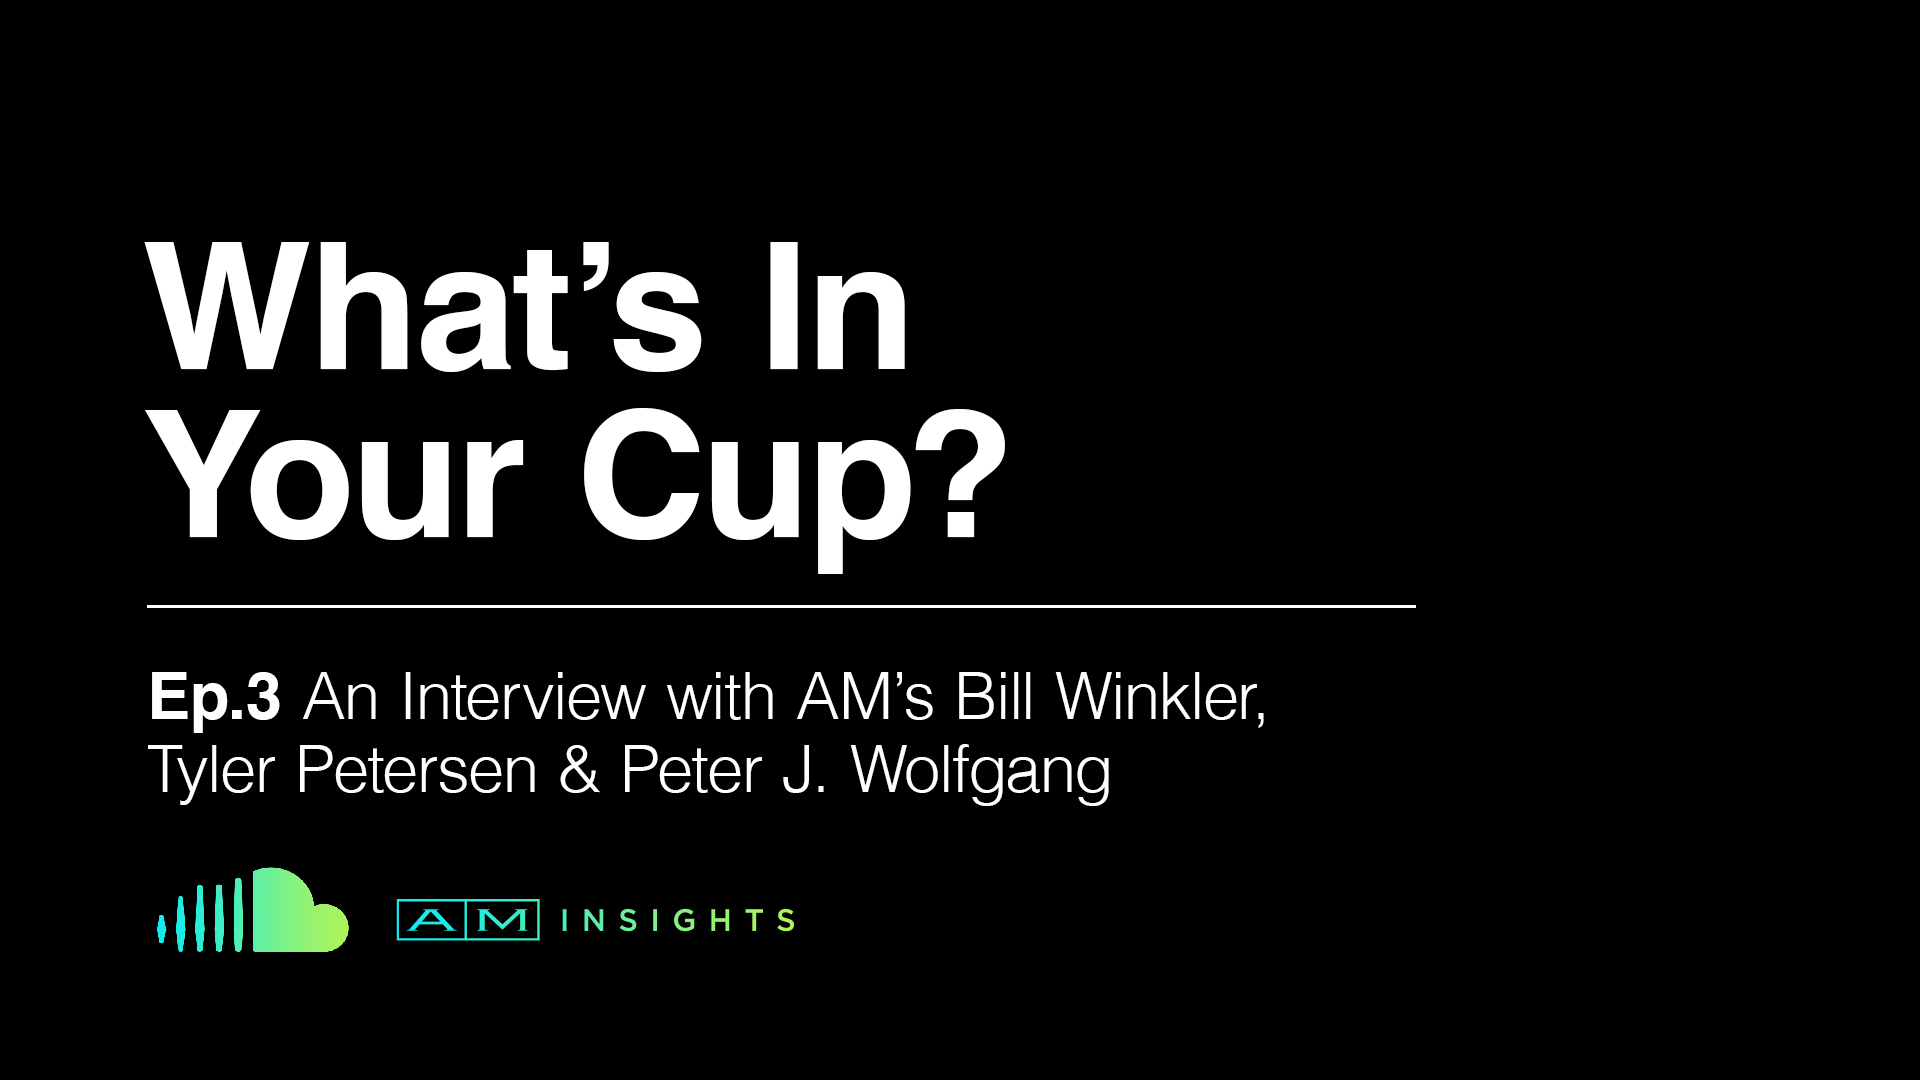 AM INSIGHTS PODCAST: EPISODE 3